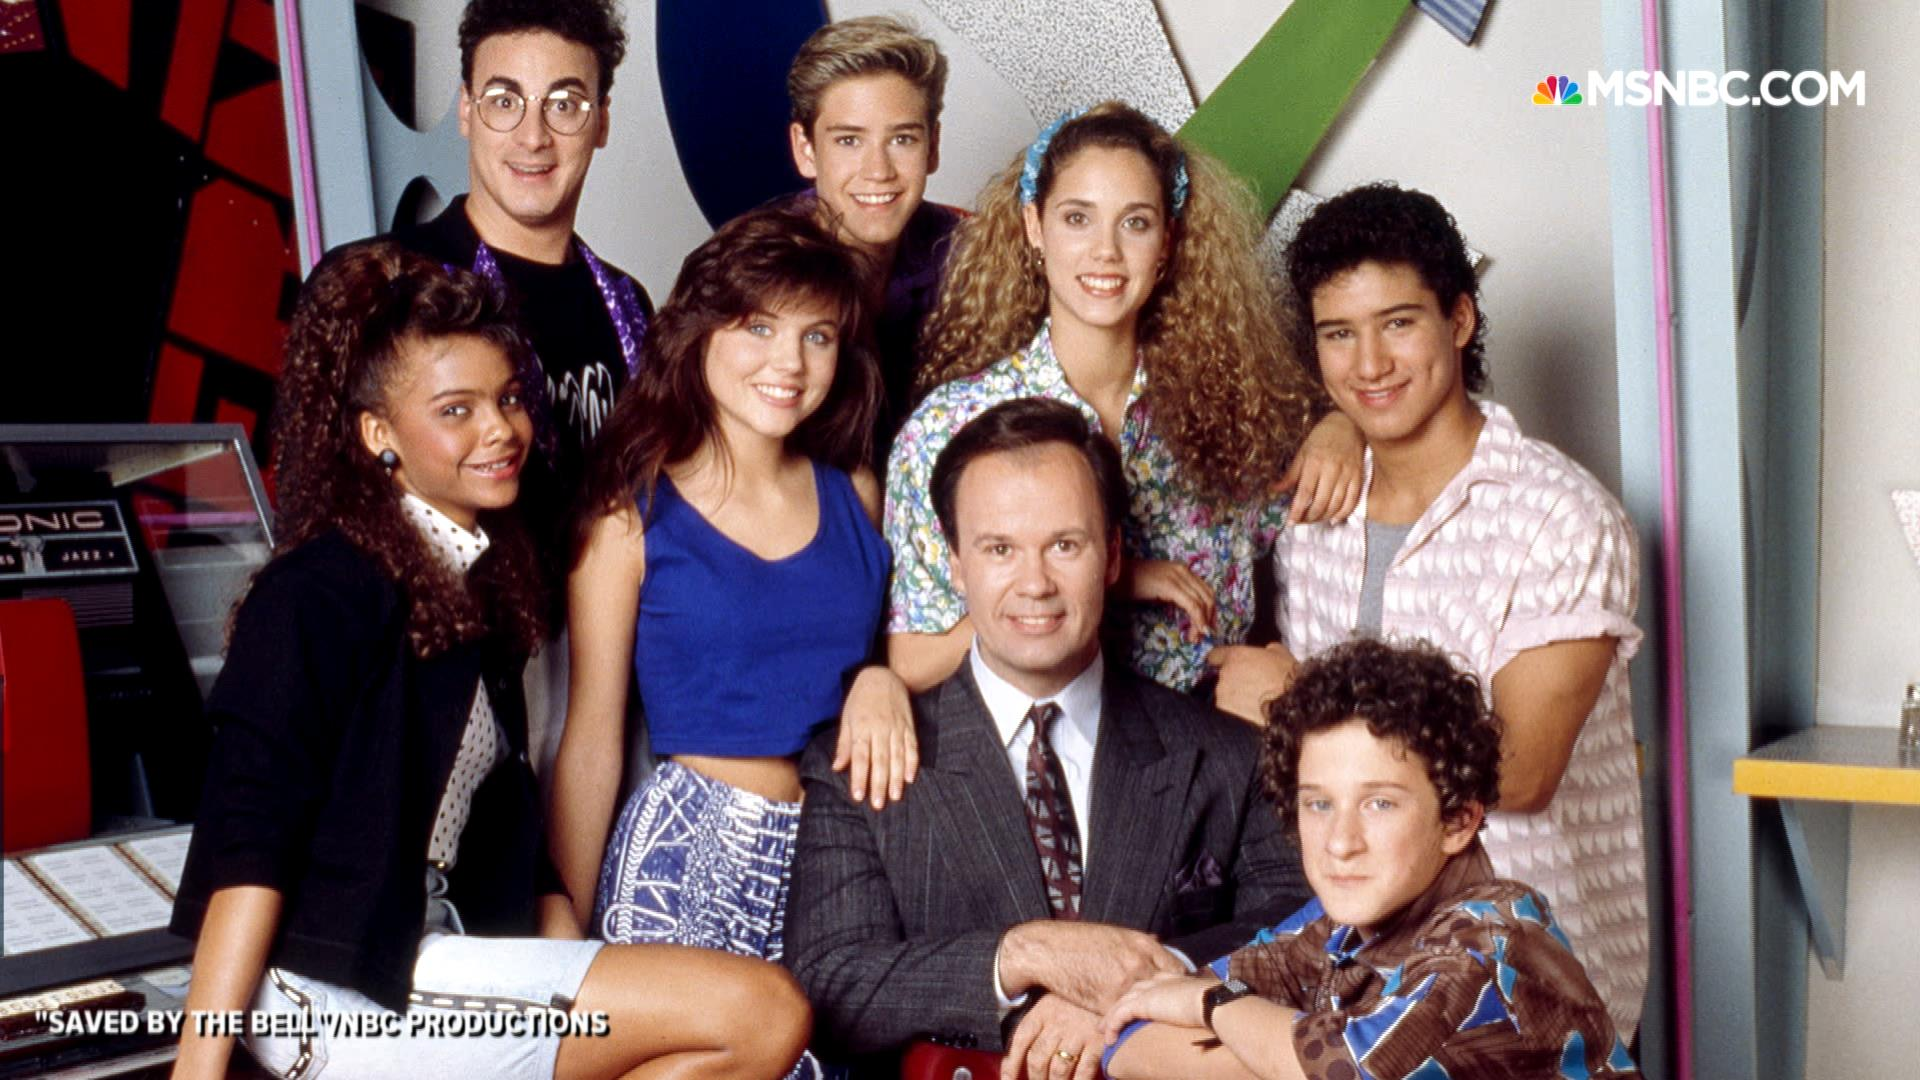 'Saved by the Bell's' the Max is back